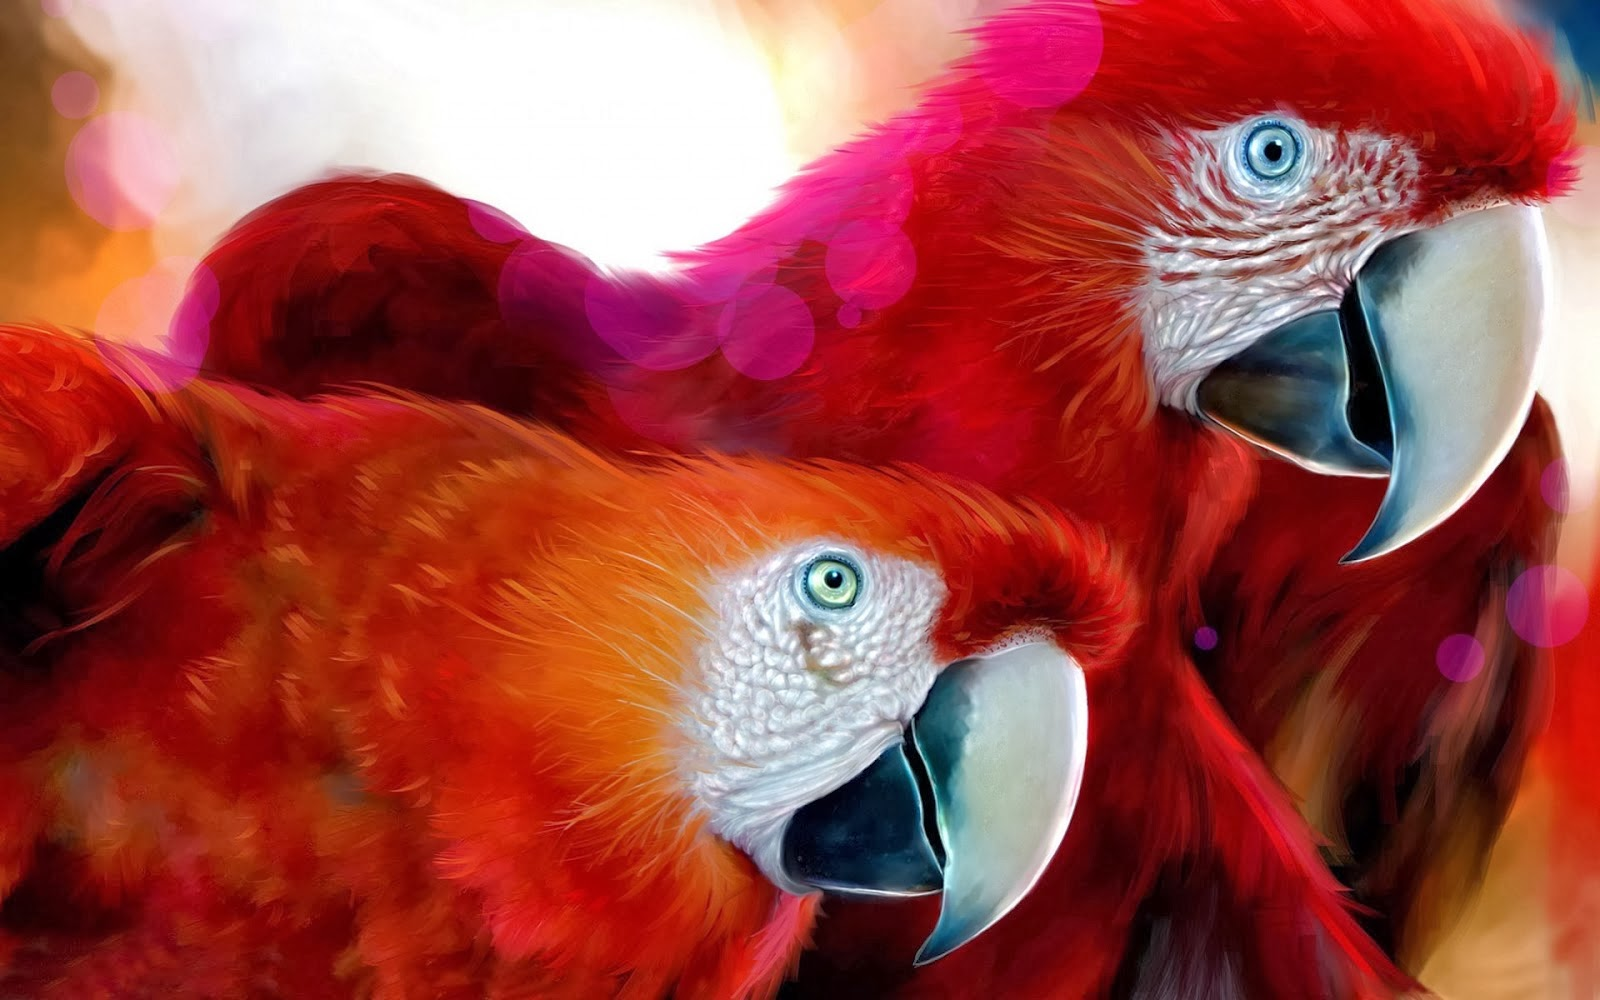 parrot hd wallpaper download 1080p parrot hd wallpaper download 1080p